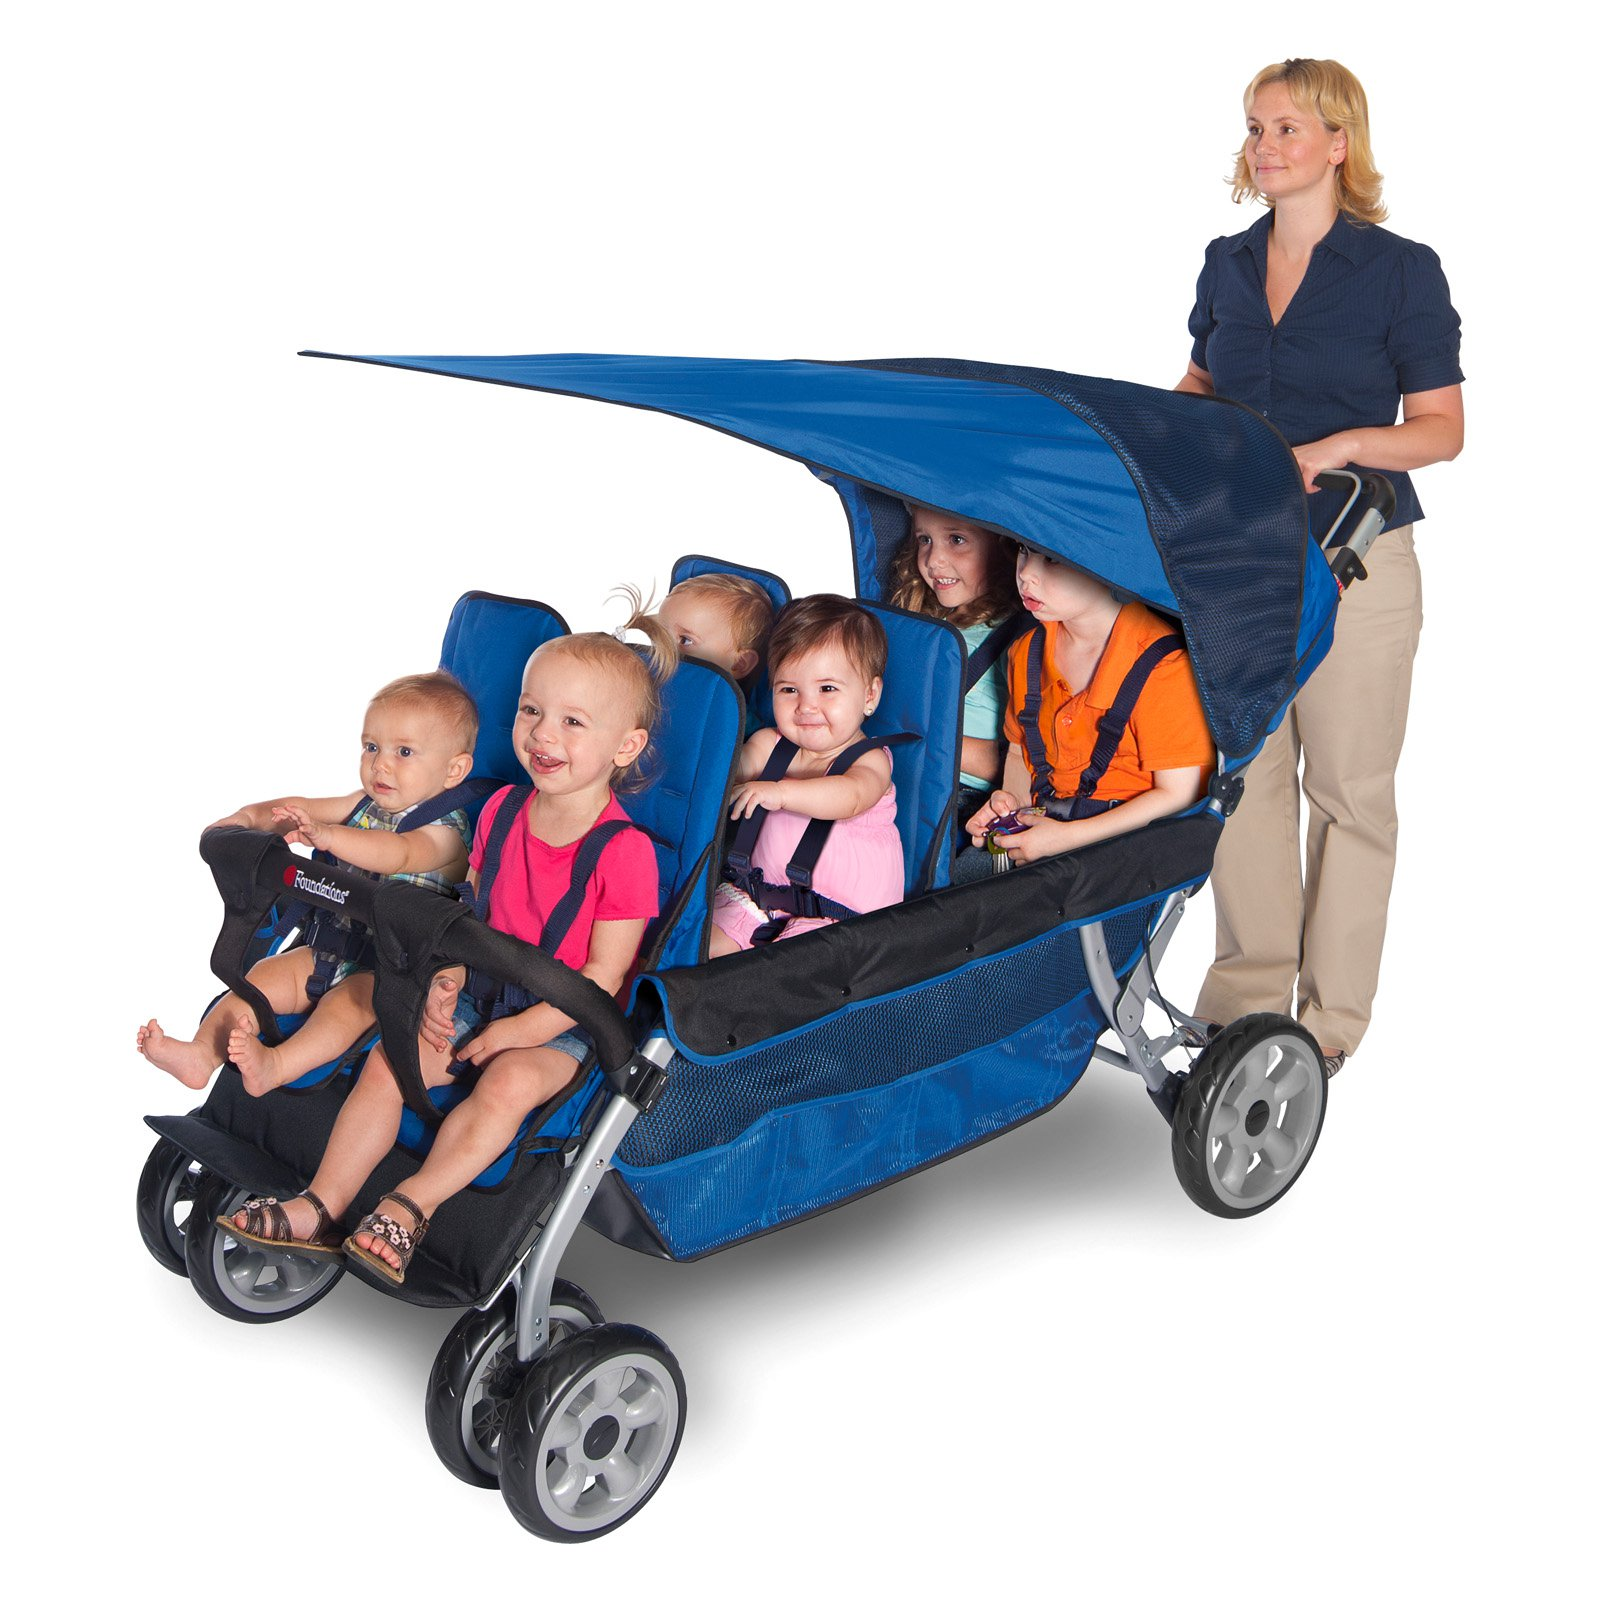 Foundations LX6 6 Passenger Stroller, Regatta Blue